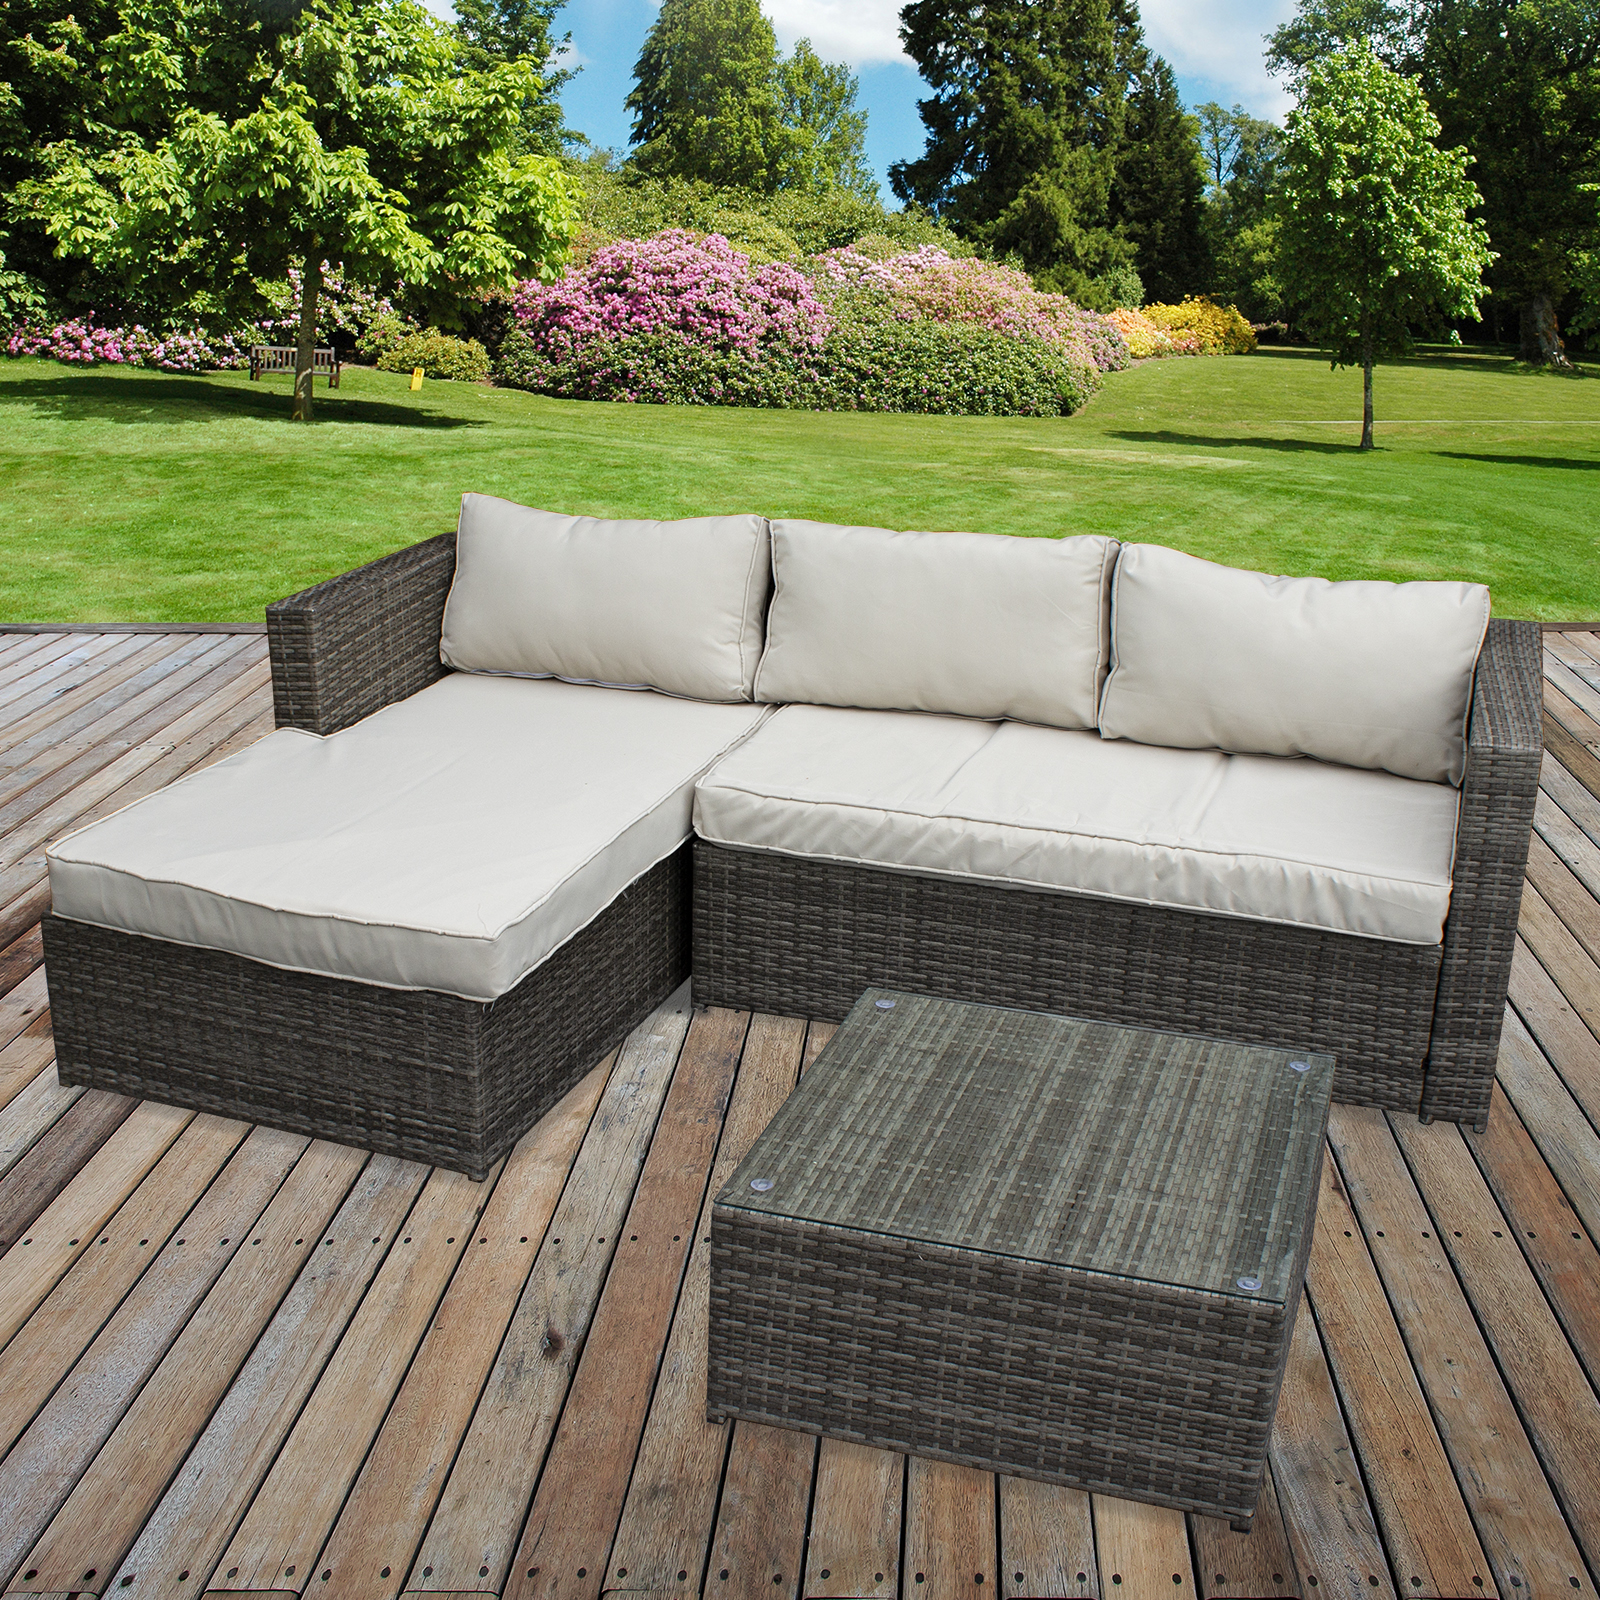 Details About Rattan Sofa Set Garden Corner L Shaped Outdoor Patio Furniture Seating Table